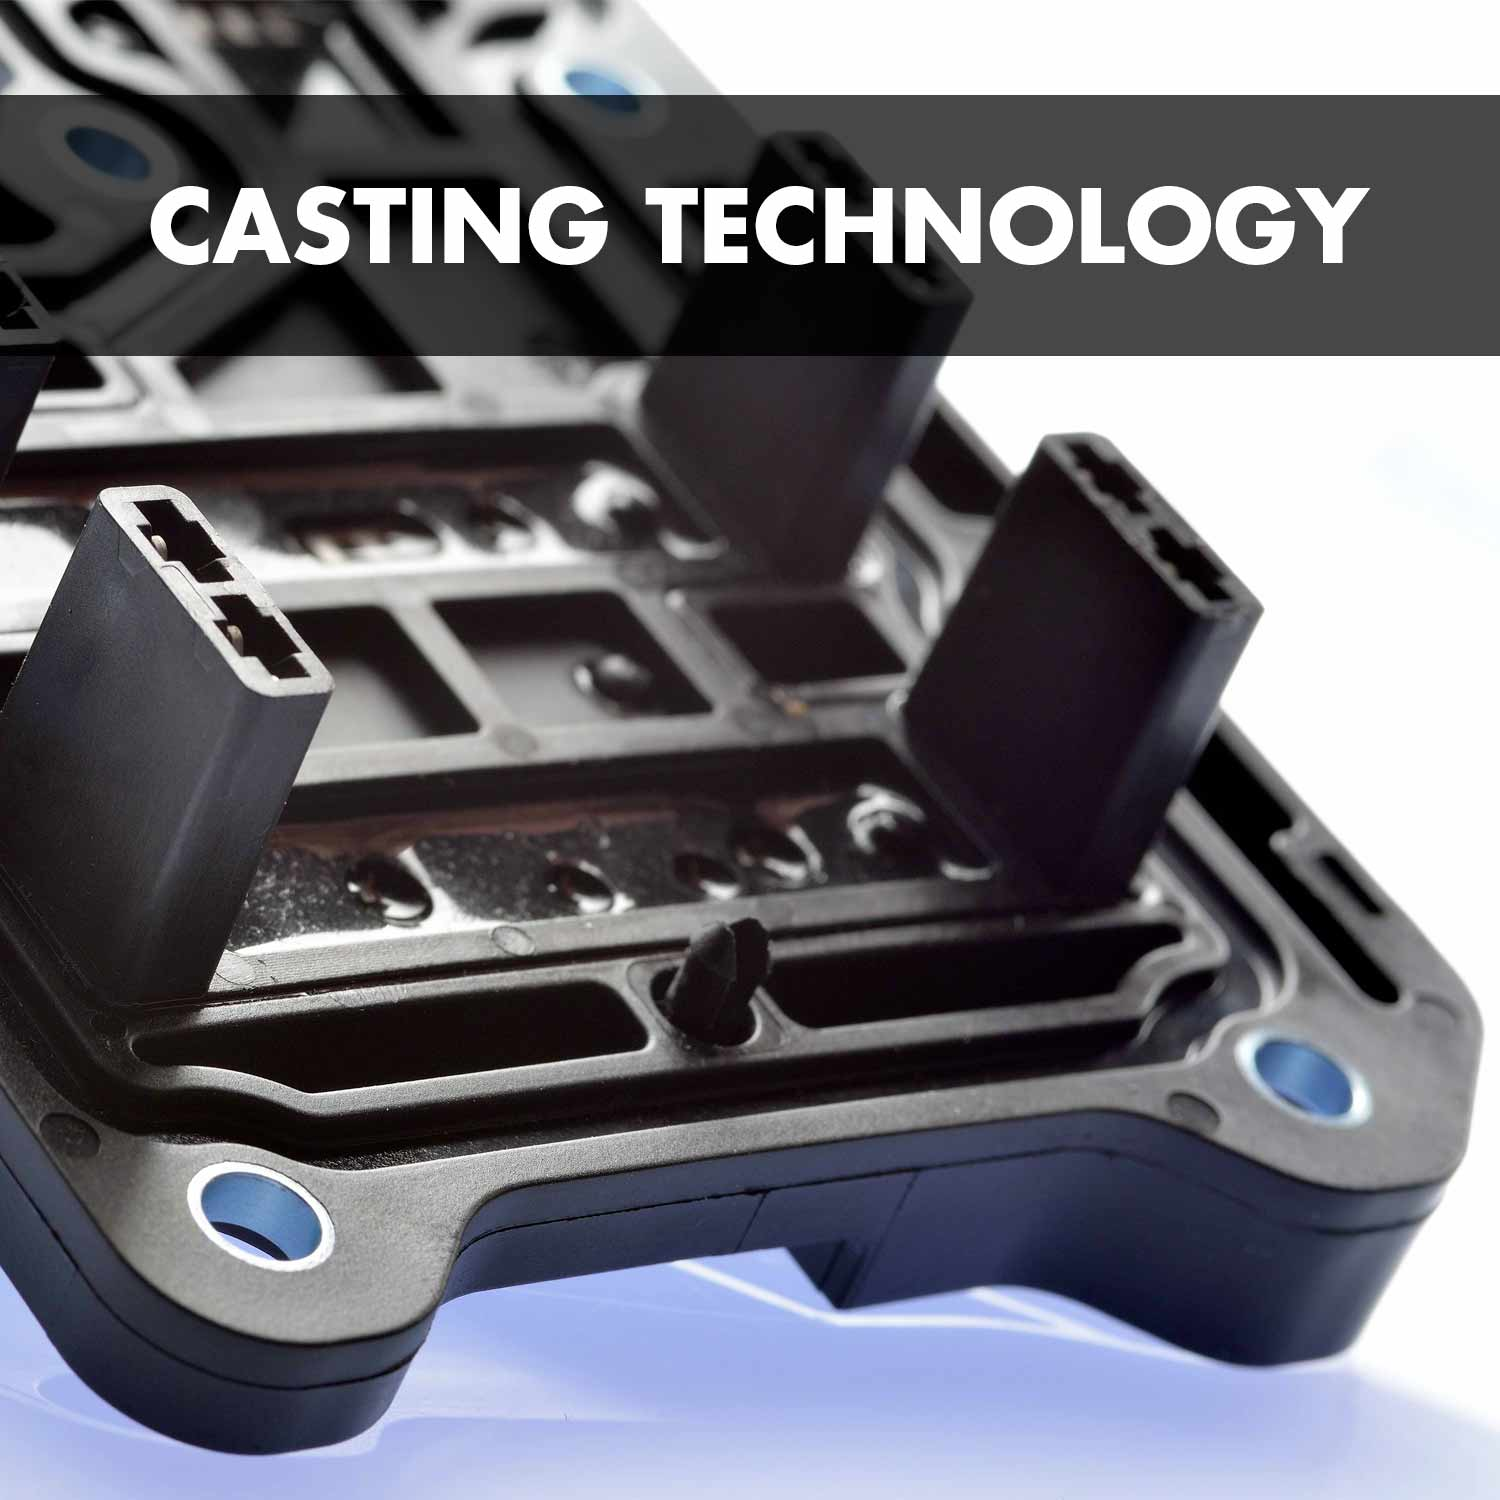 Casting technology: Precisely targeted dosing of high-quality branded casting compounds directly onto the component.